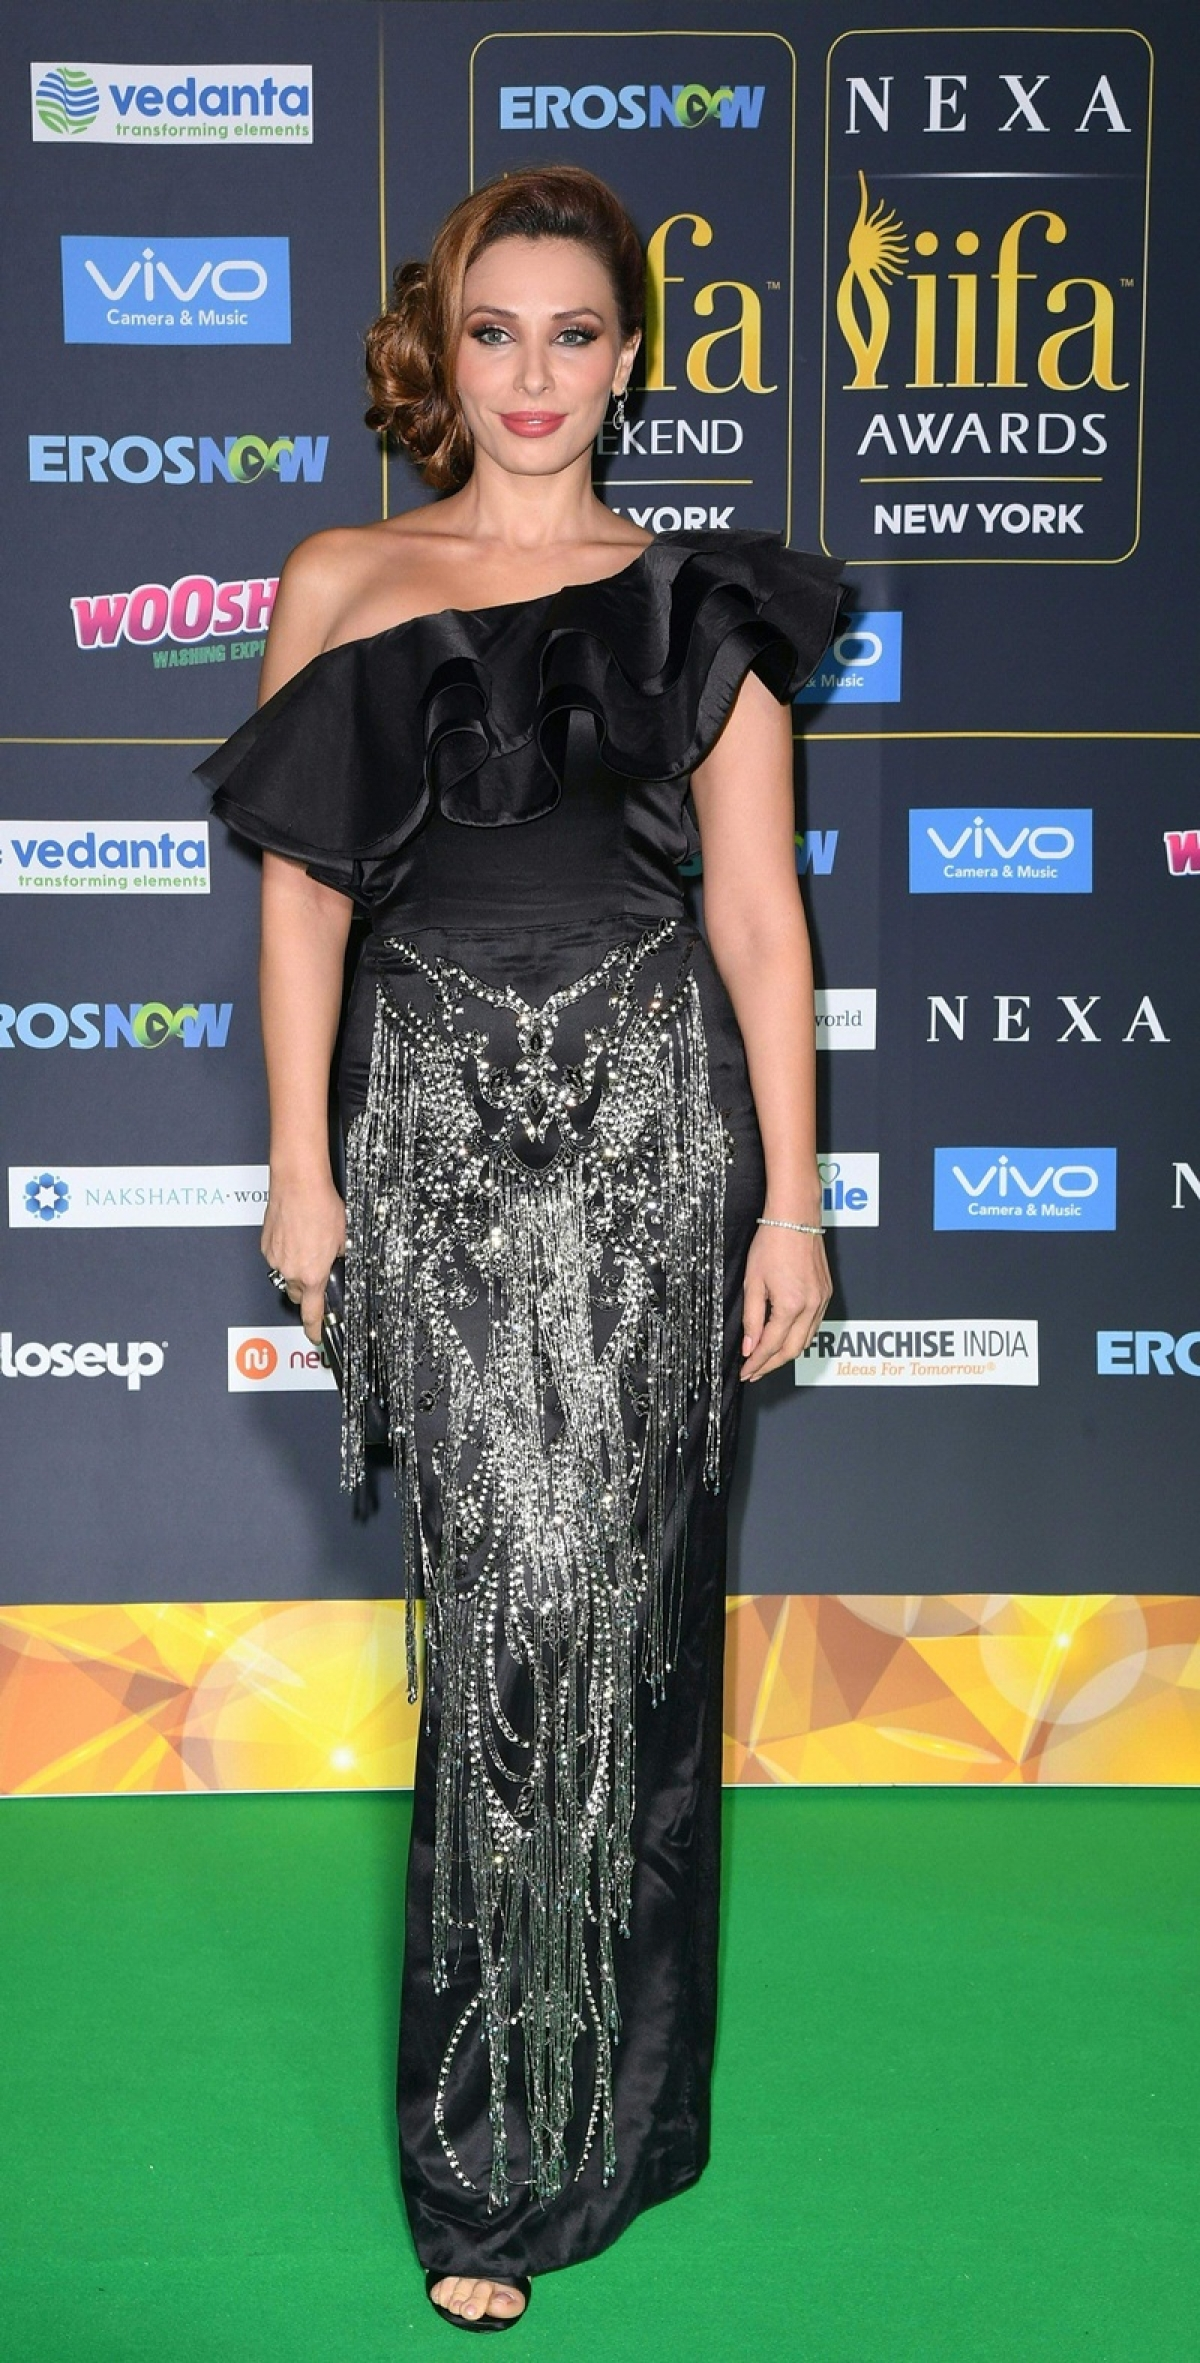 Lulia Vantur arrives for the IIFA Awards July 15, 2017 at the MetLife Stadium in East Rutherford, New Jersey during the 18th International Indian Film Academy (IIFA) Festival. / AFP PHOTO / ANGELA WEISS